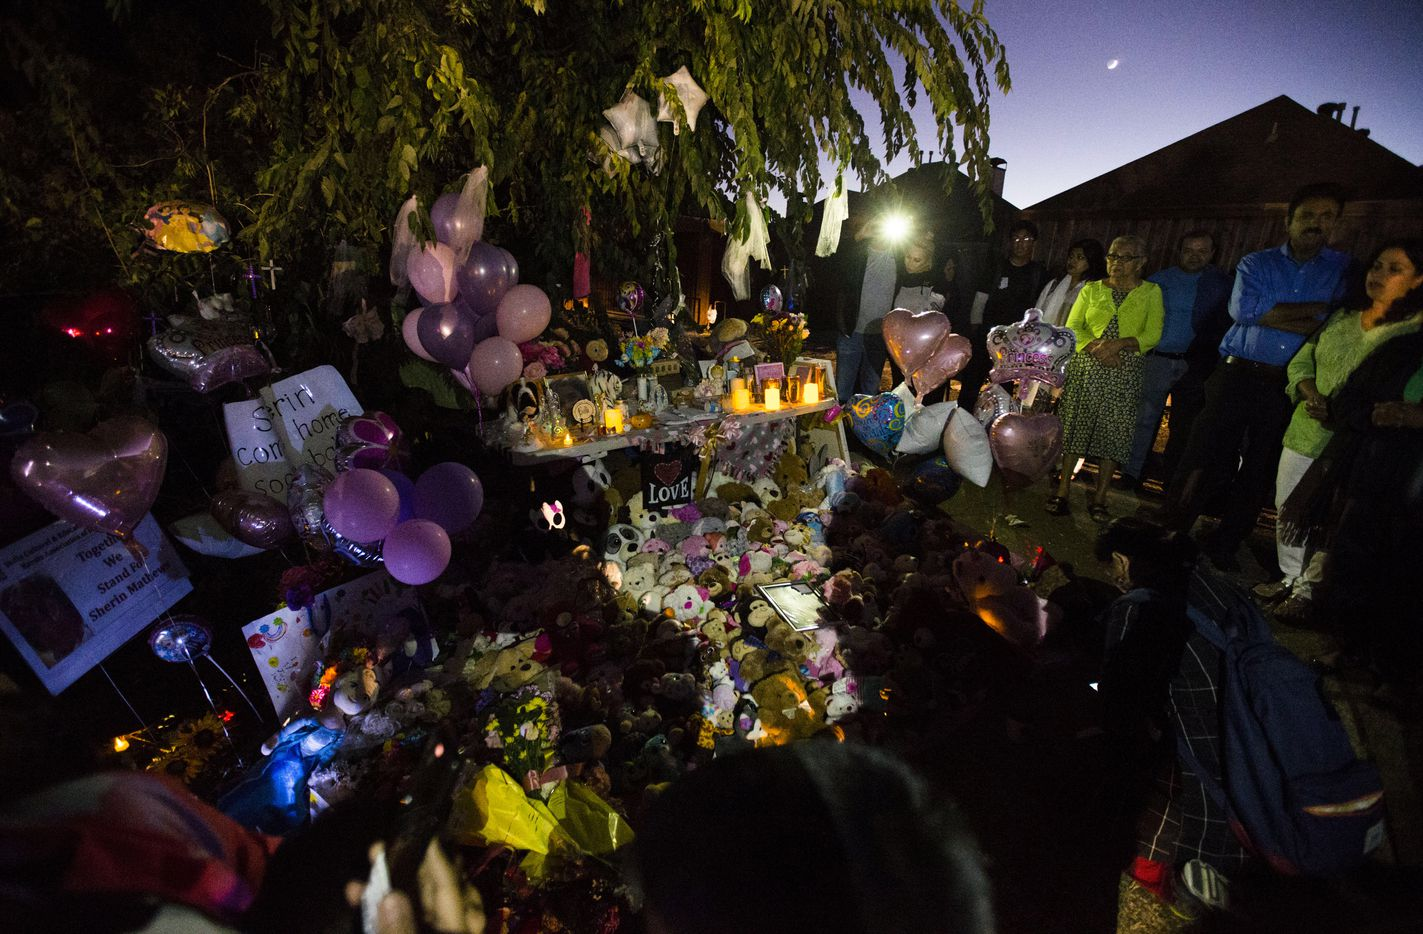 People gather at a memorial for missing three-year-old Sherin Mathews on Sunday, October 22, 2017 at a tree behind her home at the 900 block of Sunningdale in Richardson, Texas. Police found the remains of a young child at 11 a.m., but have not confirmed that it is Mathews. Sherin Mathews was last seen at 3 a.m. on Saturday, October 7, 2017, when her father, Wesley Mathews told police he took her outside to stand by a tree, pictured, about 100 feet from their home, as a punishment for not drinking her milk. He was arrested on a charge of abandoning or endangering a child, and was later released from custody after posting bail. (Ashley Landis/The Dallas Morning News)